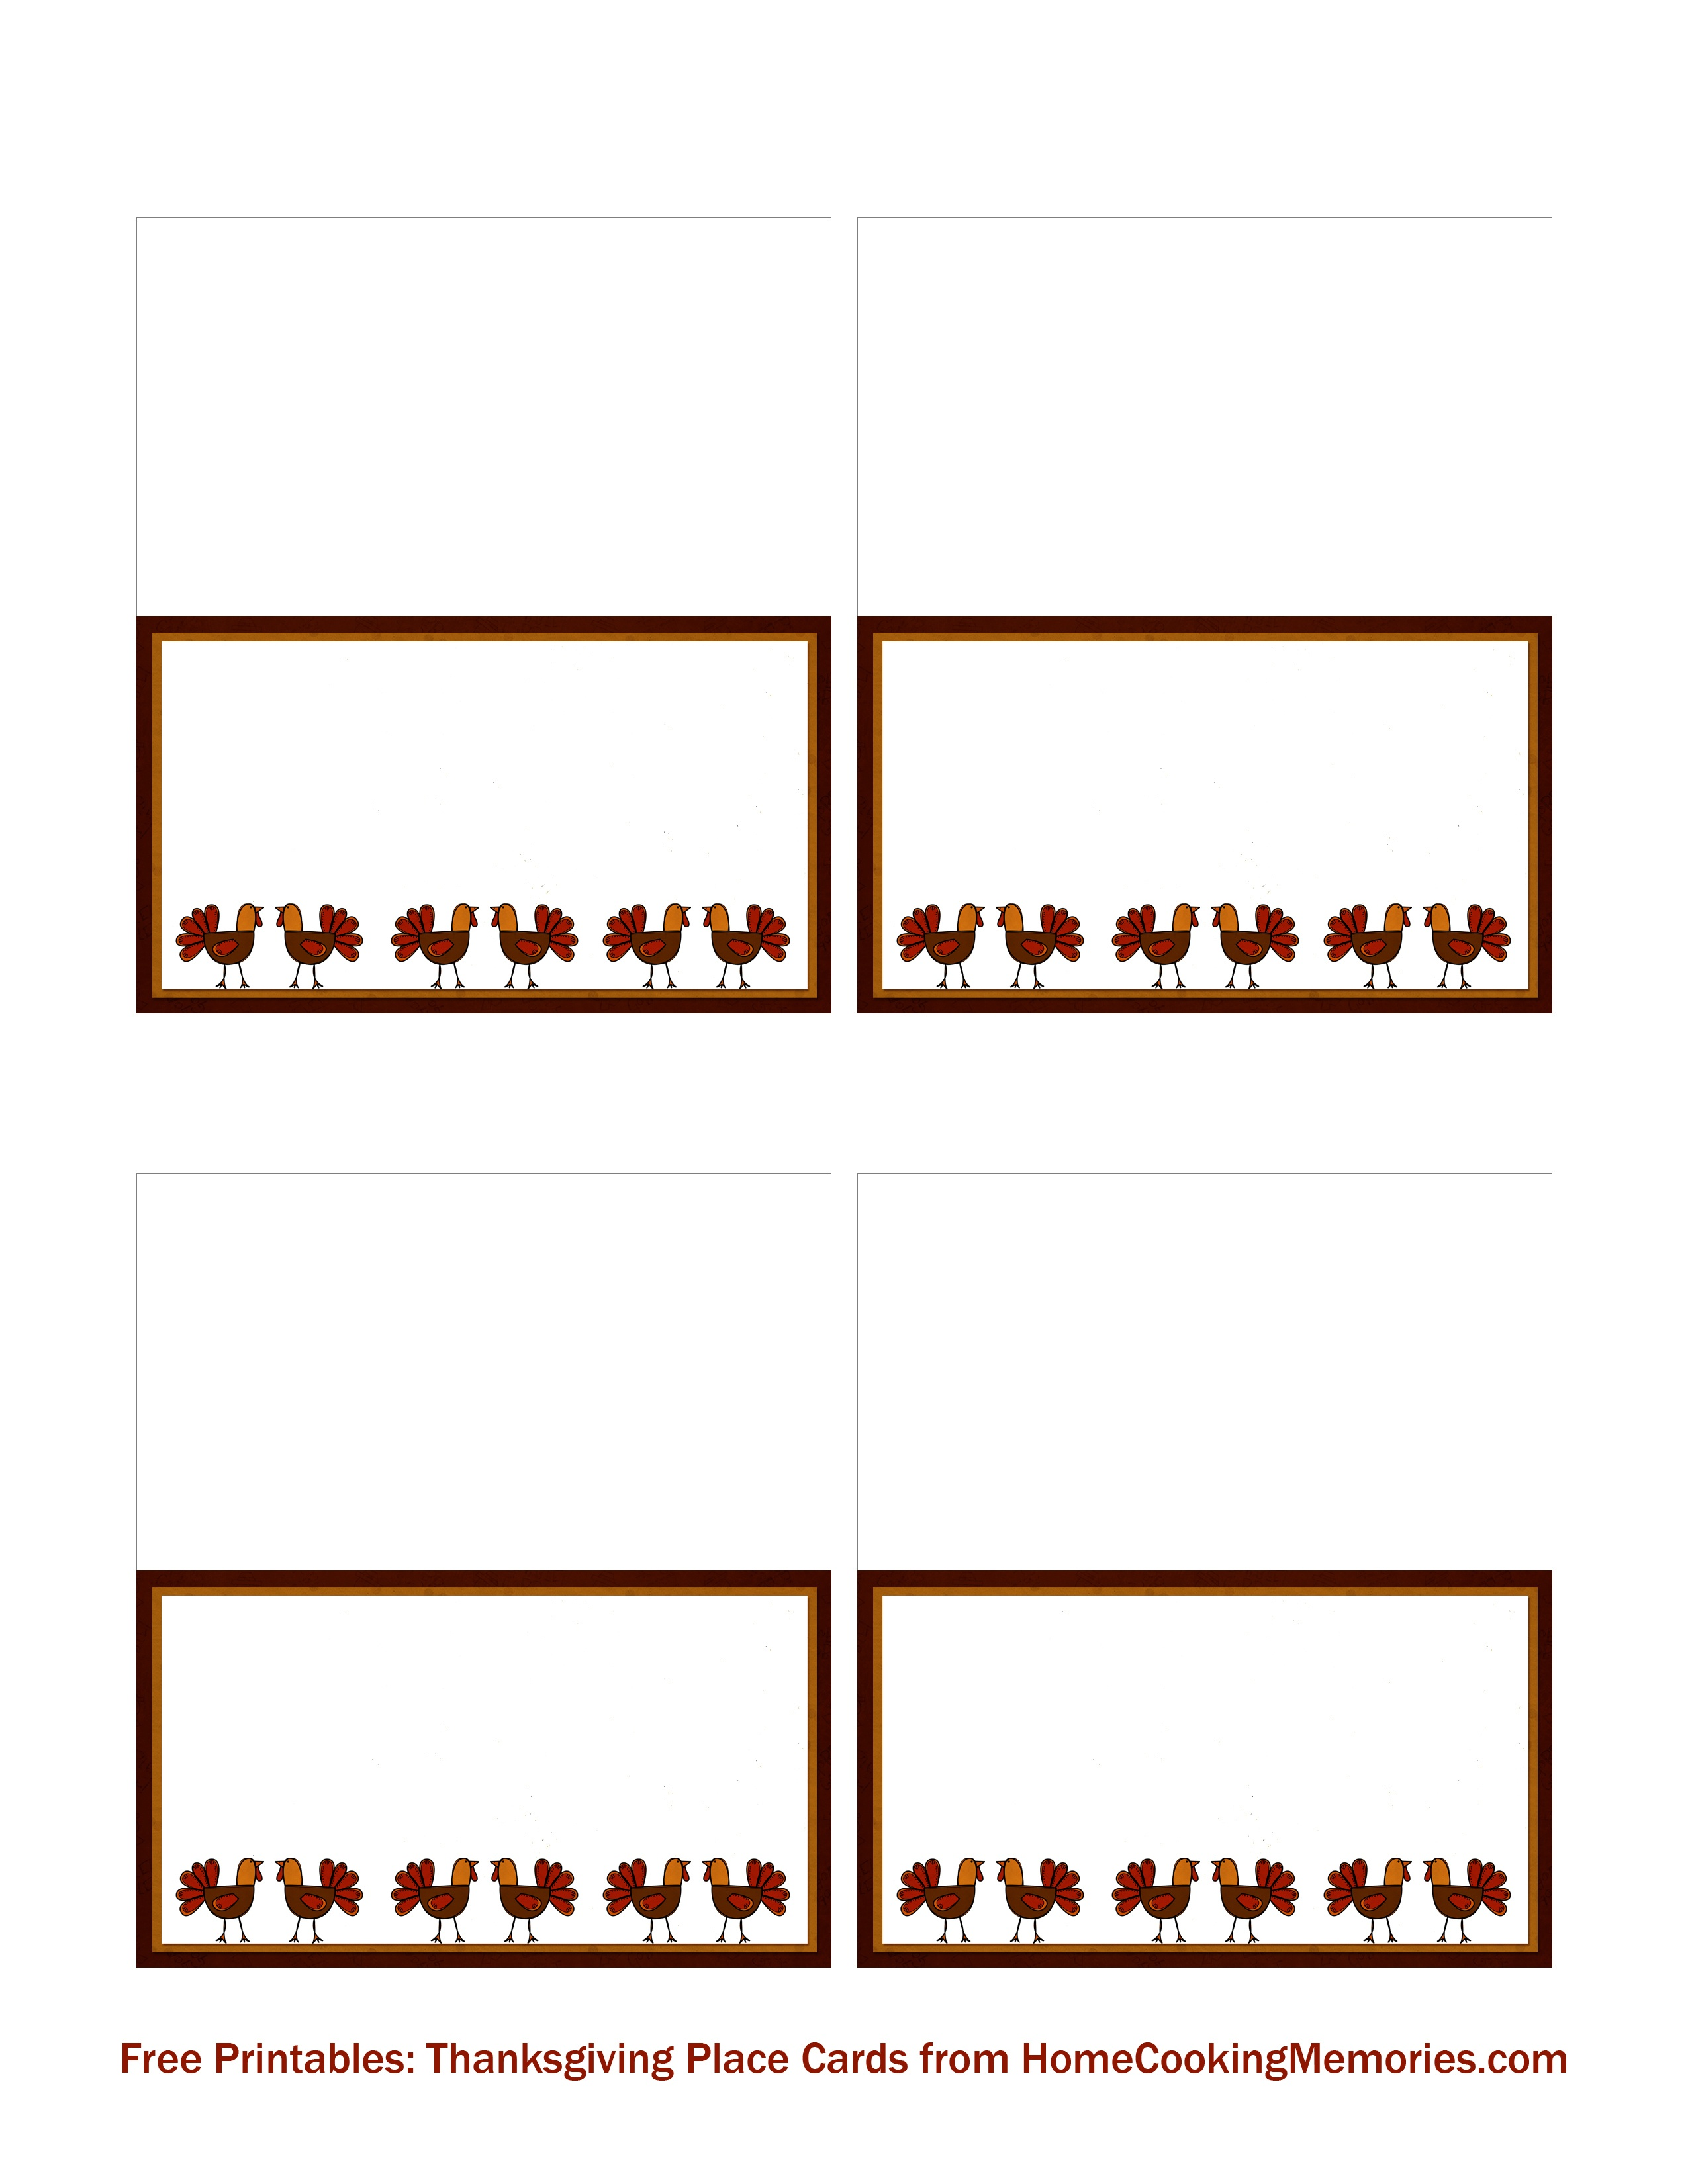 Free Printables: Thanksgiving Place Cards - Home Cooking Memories - Free Printable Place Cards Template